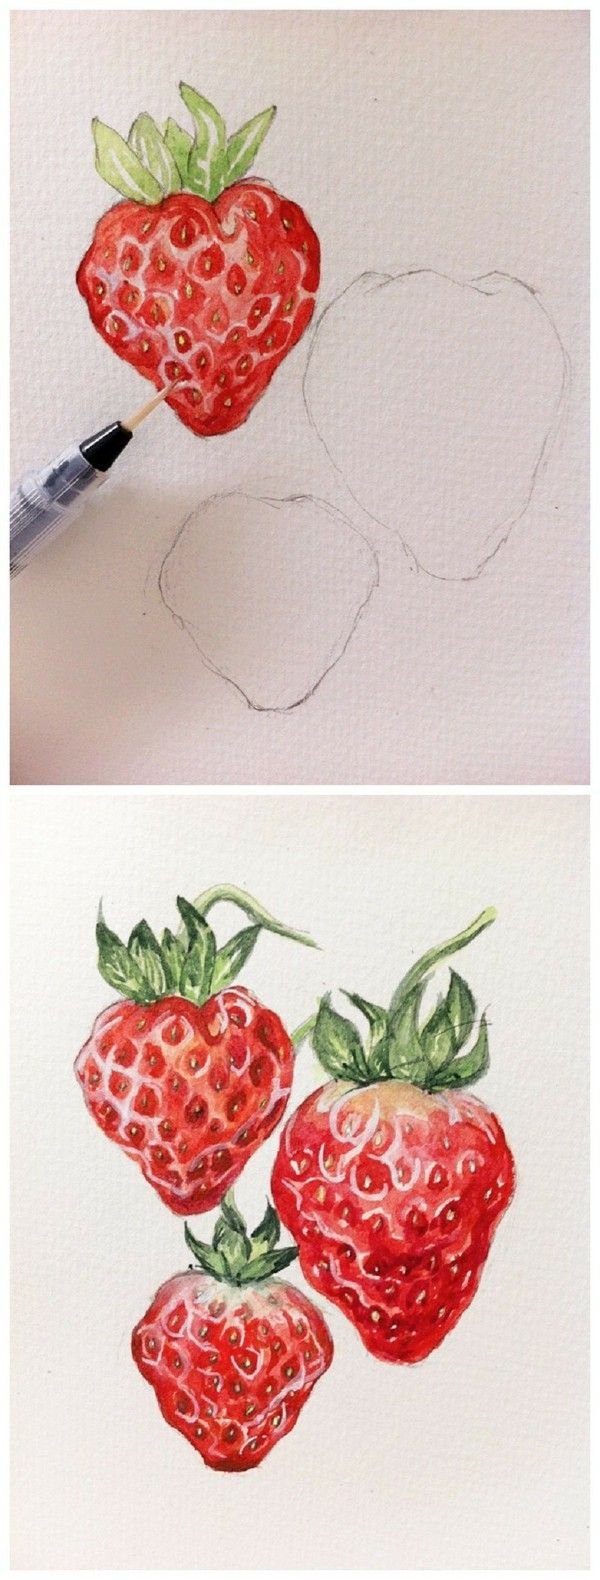 Drawn strawberry color pencil Drawing Pinterest ideas #Fruit strawberry